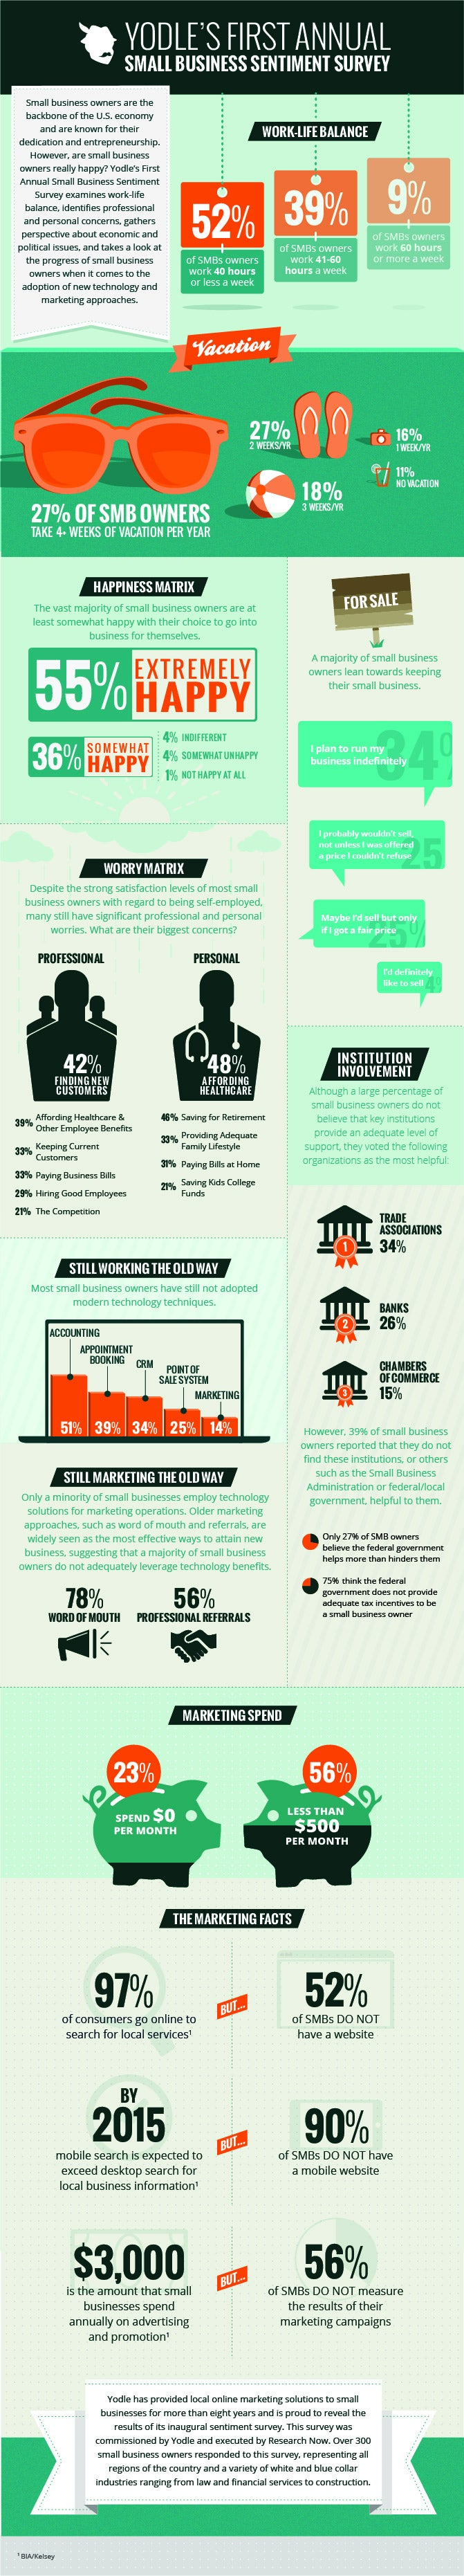 How Happy Are Small-Business Owners? (Infographic)